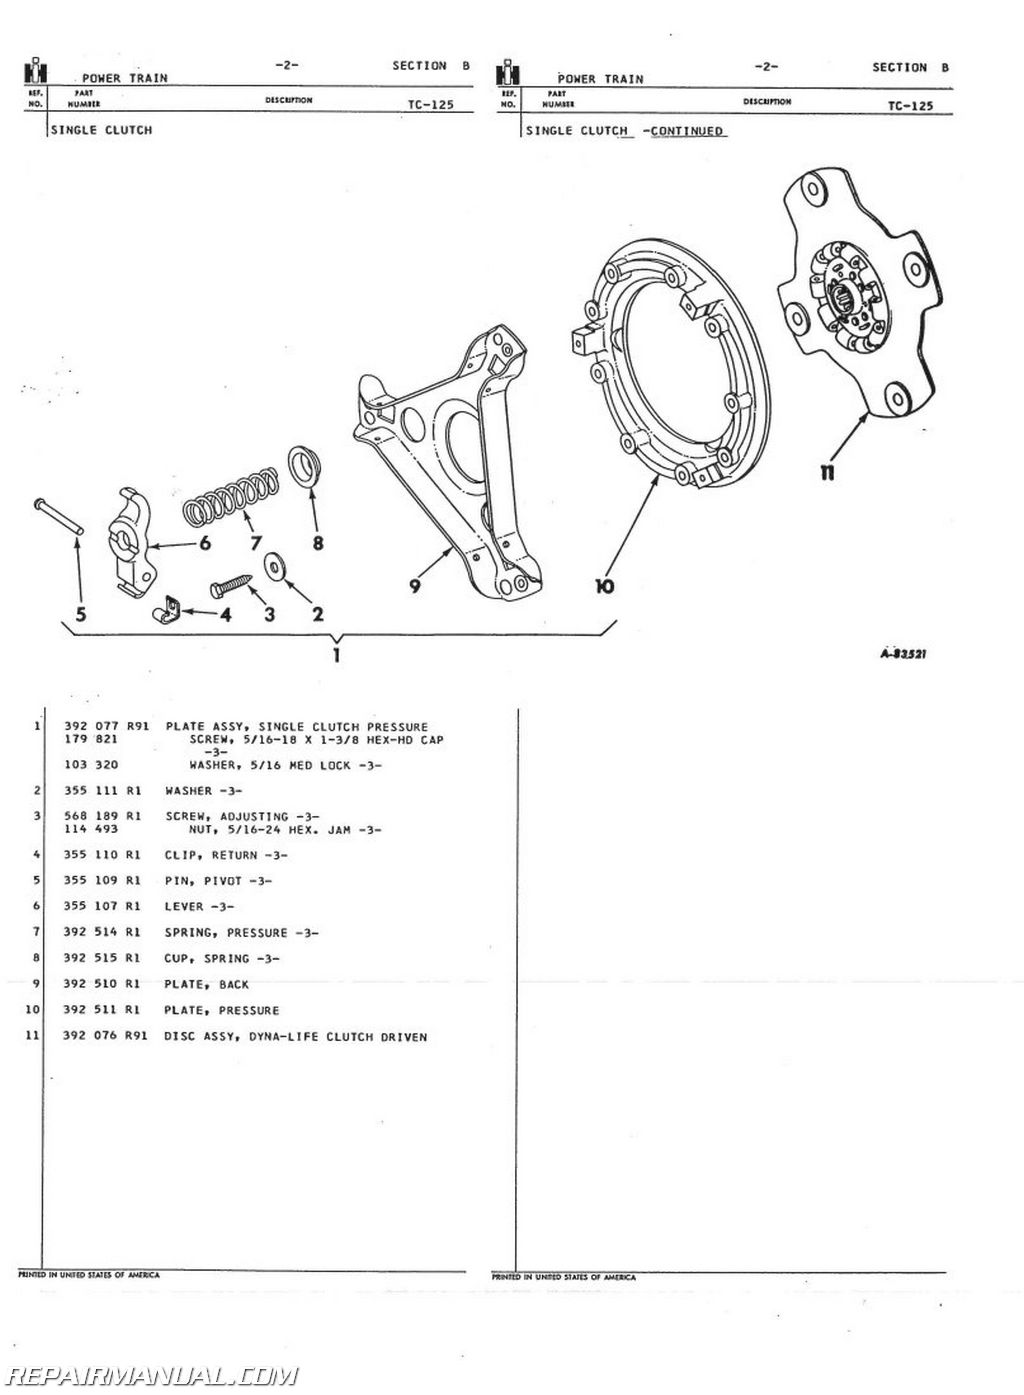 International Harvester 444 Wiring Diagram Real Wire Scout Ll 2444 Gas And Diesel Parts Manual Electrical Diagrams External Voltage Regulator